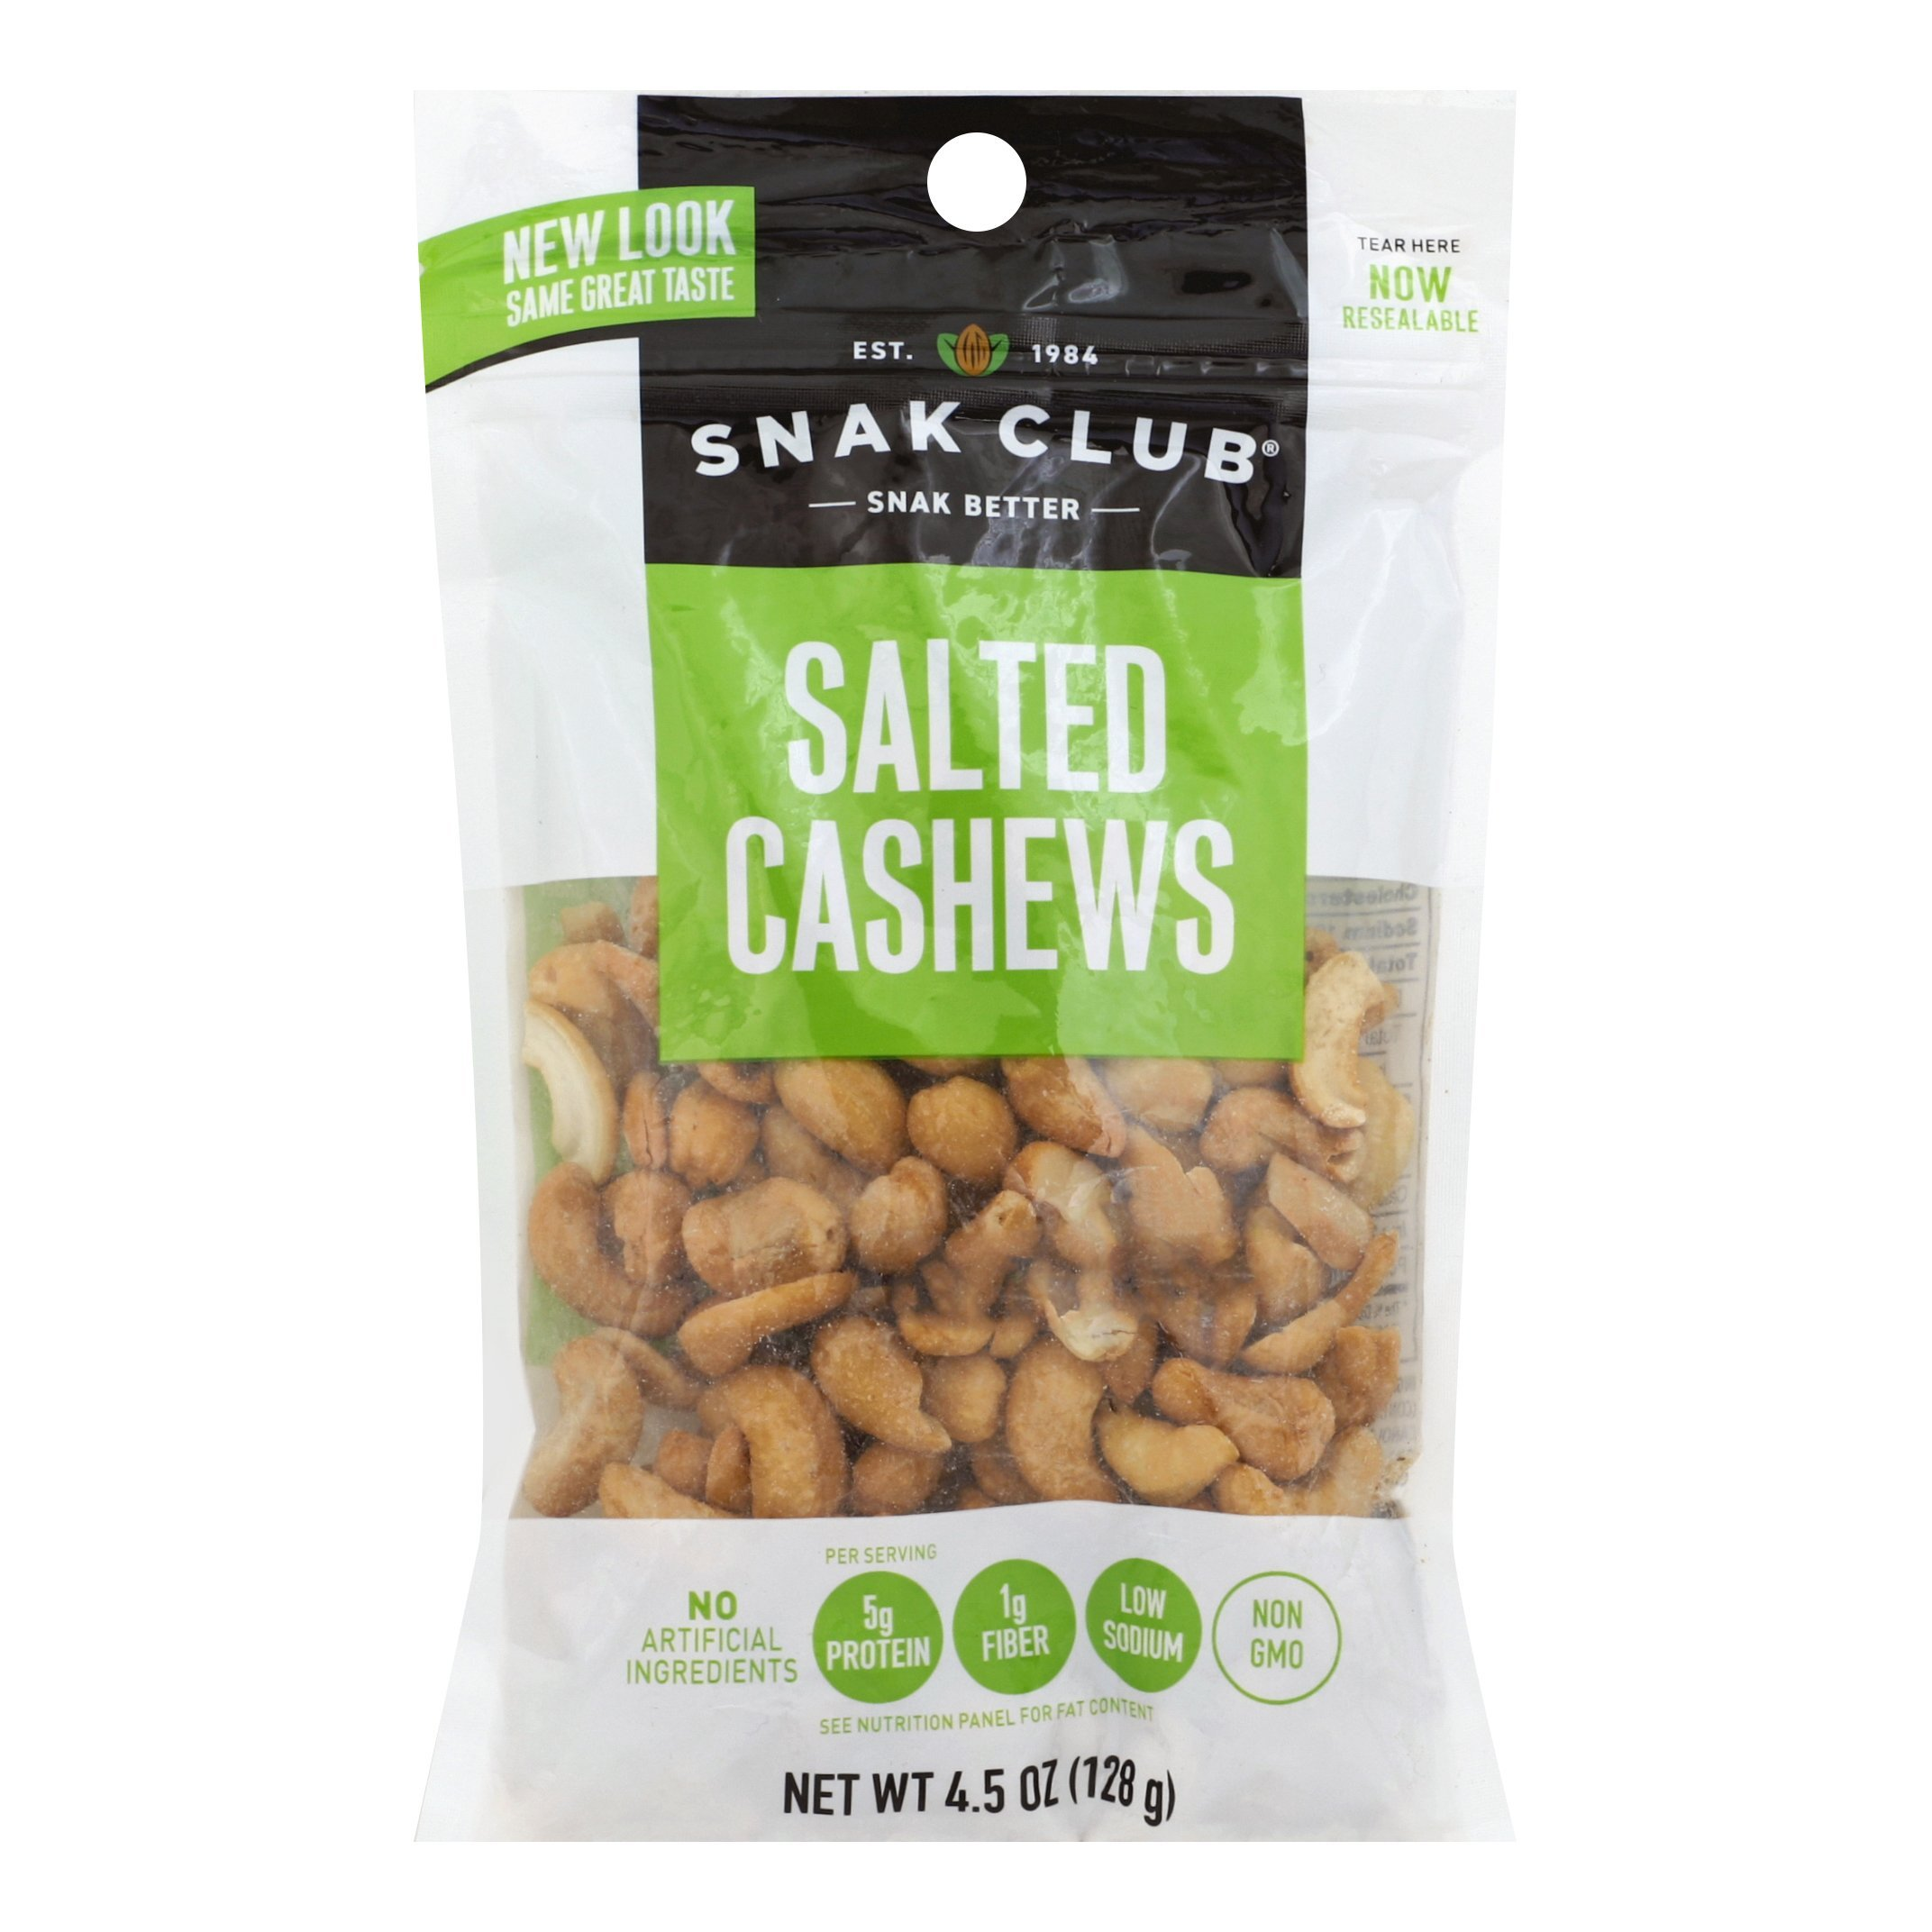 Snak Club All Natural Salted Cashews, Non-GMO, 4.5-Ounces, 6-Pack